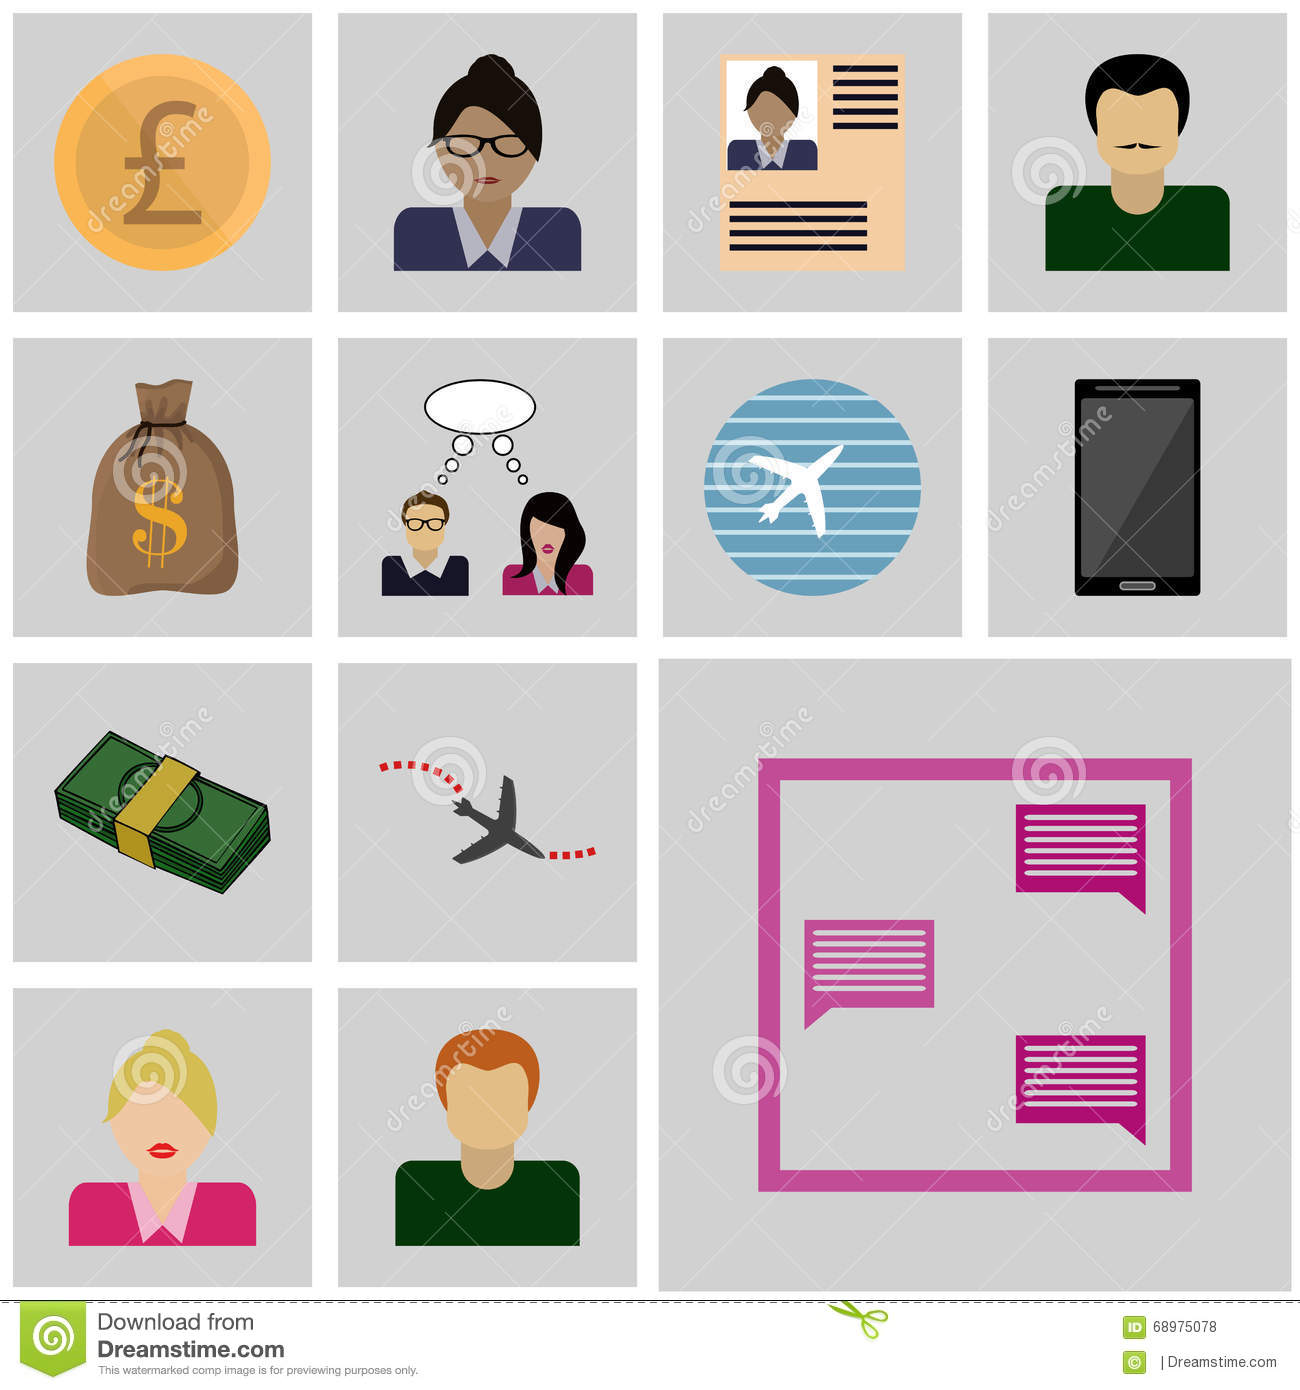 Icons set business/ Vector icon correspondence, message